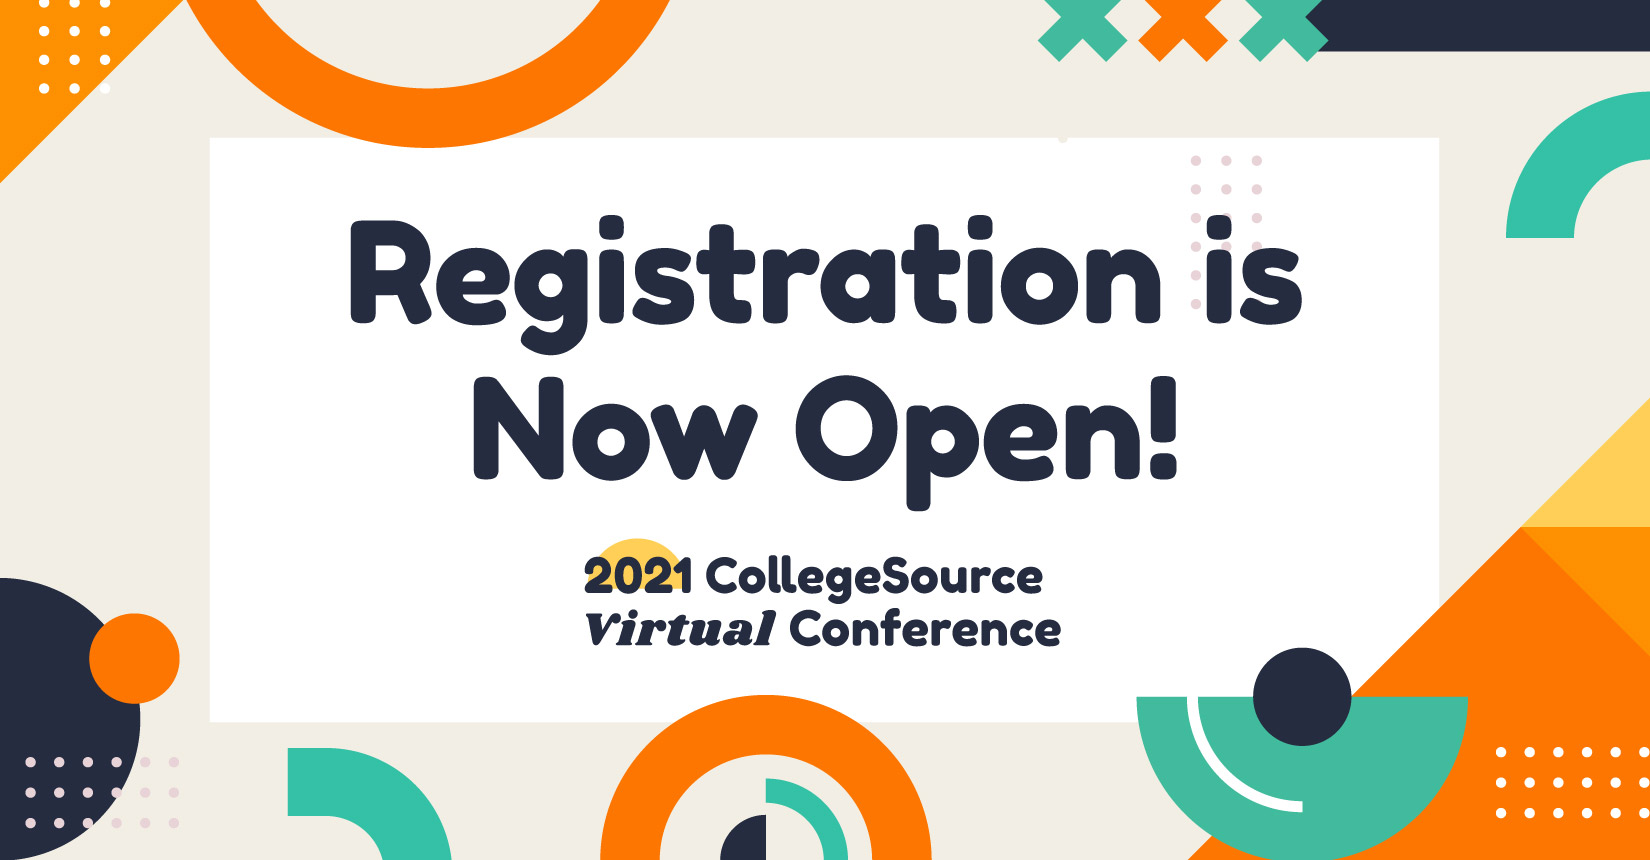 2021-CollegeSource-Virtual-Conference-Banner-Registration-Now-Open